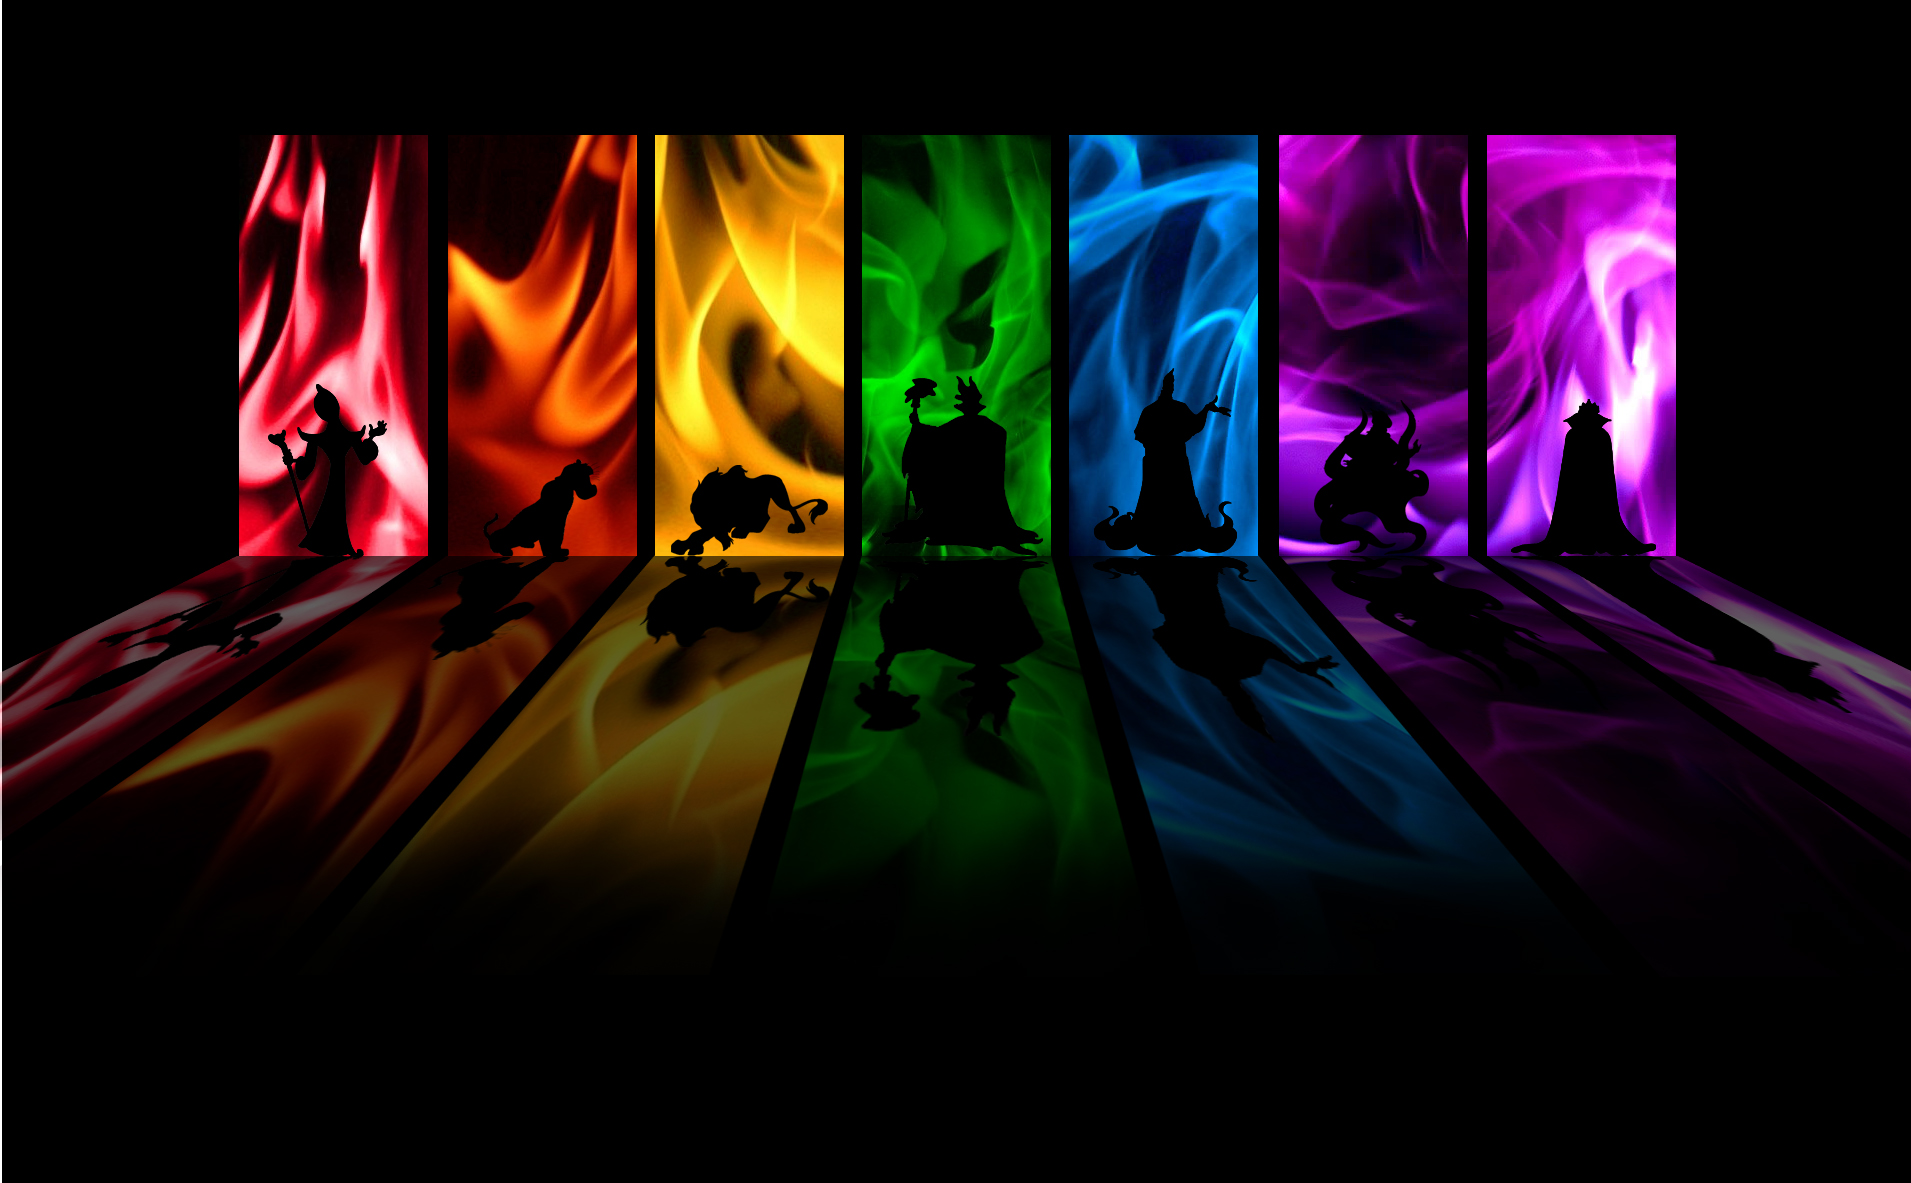 rainbow_of_fire_disney_villain_by_skies_of_blue-d3z0ygp.jpg